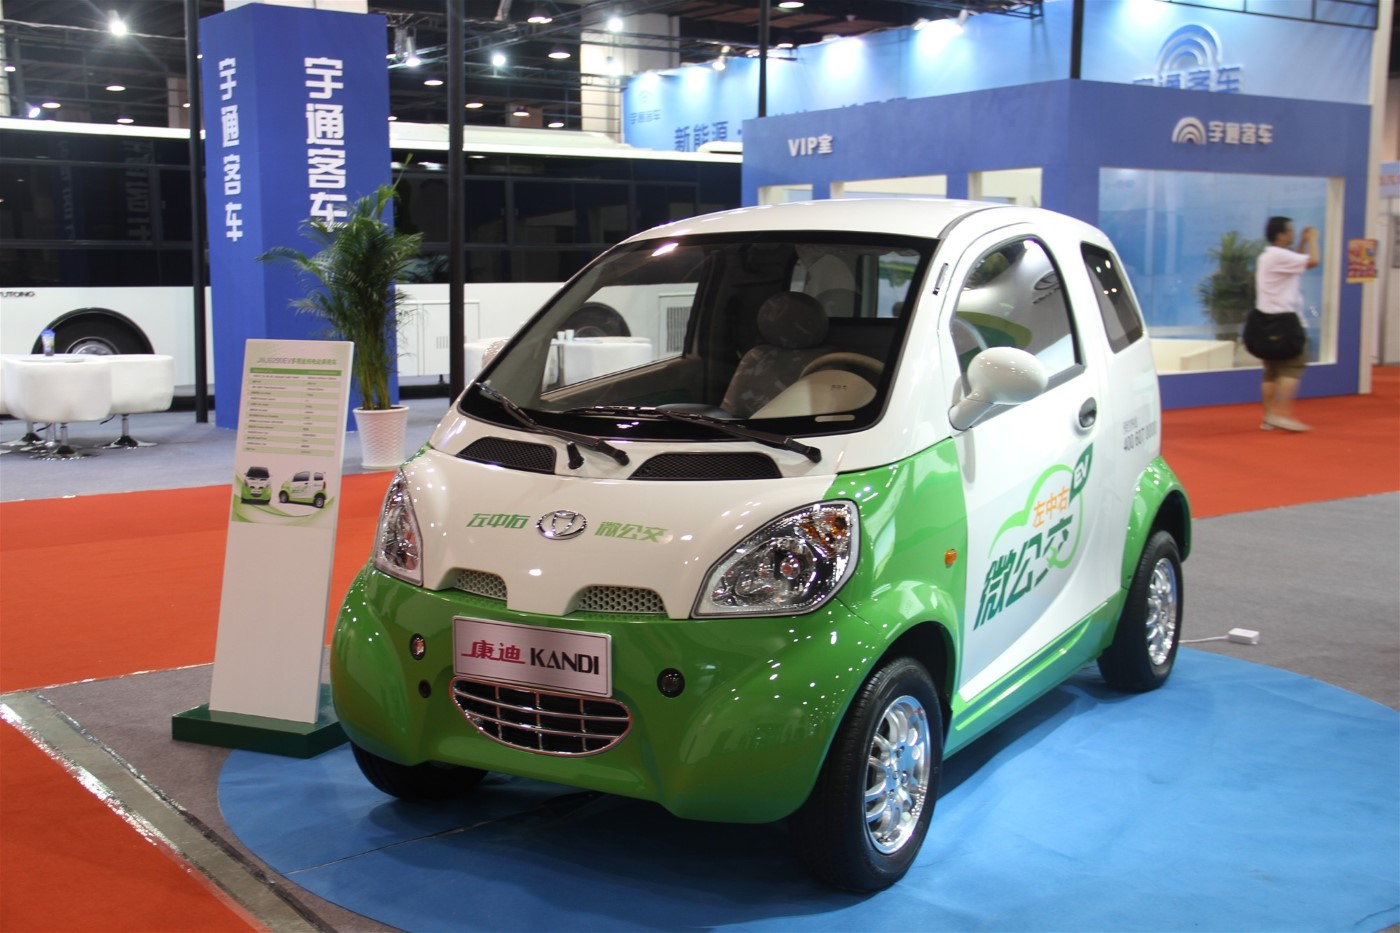 Kandi Chinese Electric Car Sharing Service Expands To